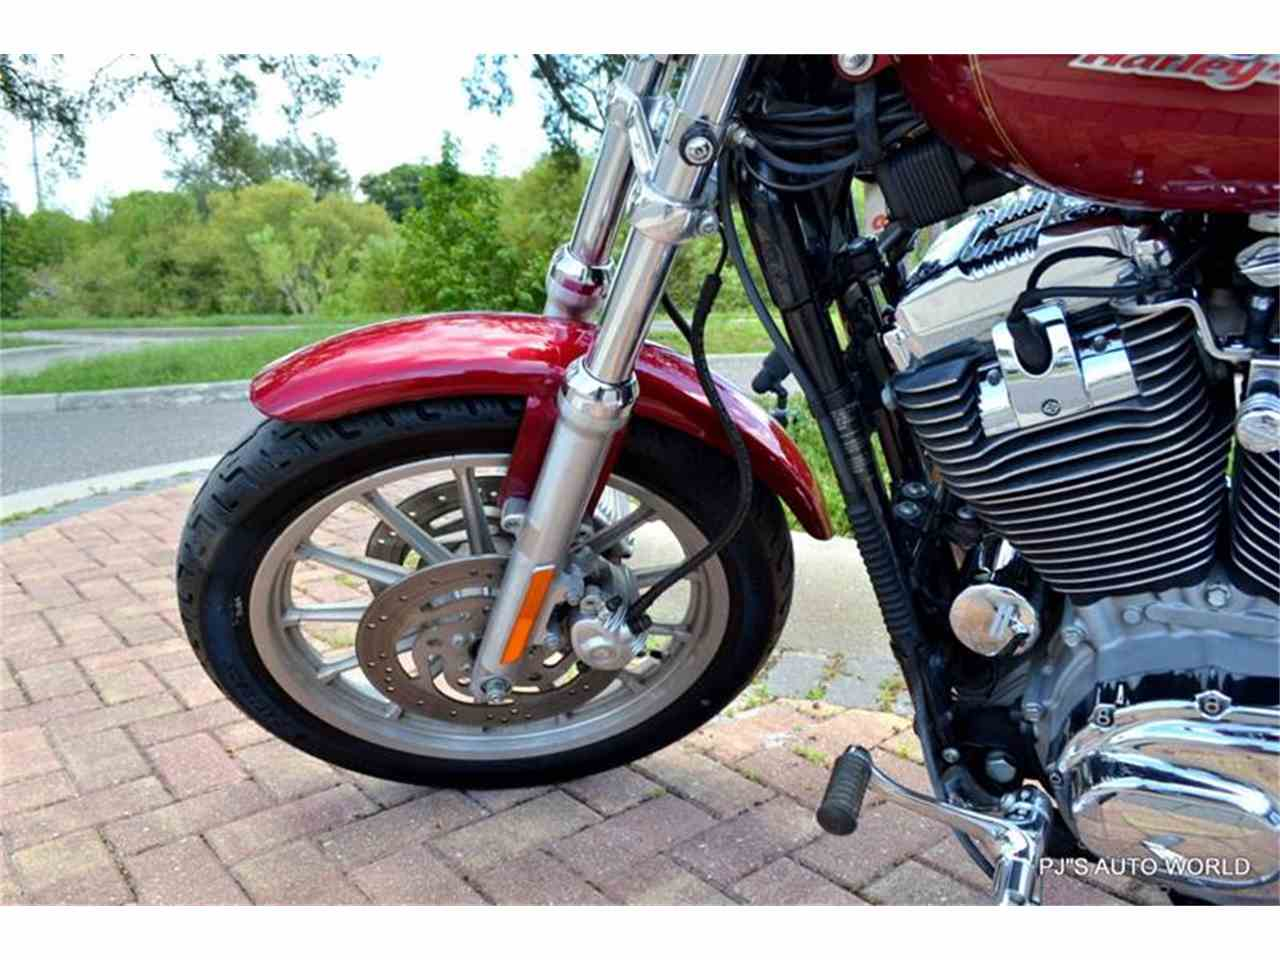 Large Picture of 2004 Sportster located in Florida - $6,300.00 - 91G4